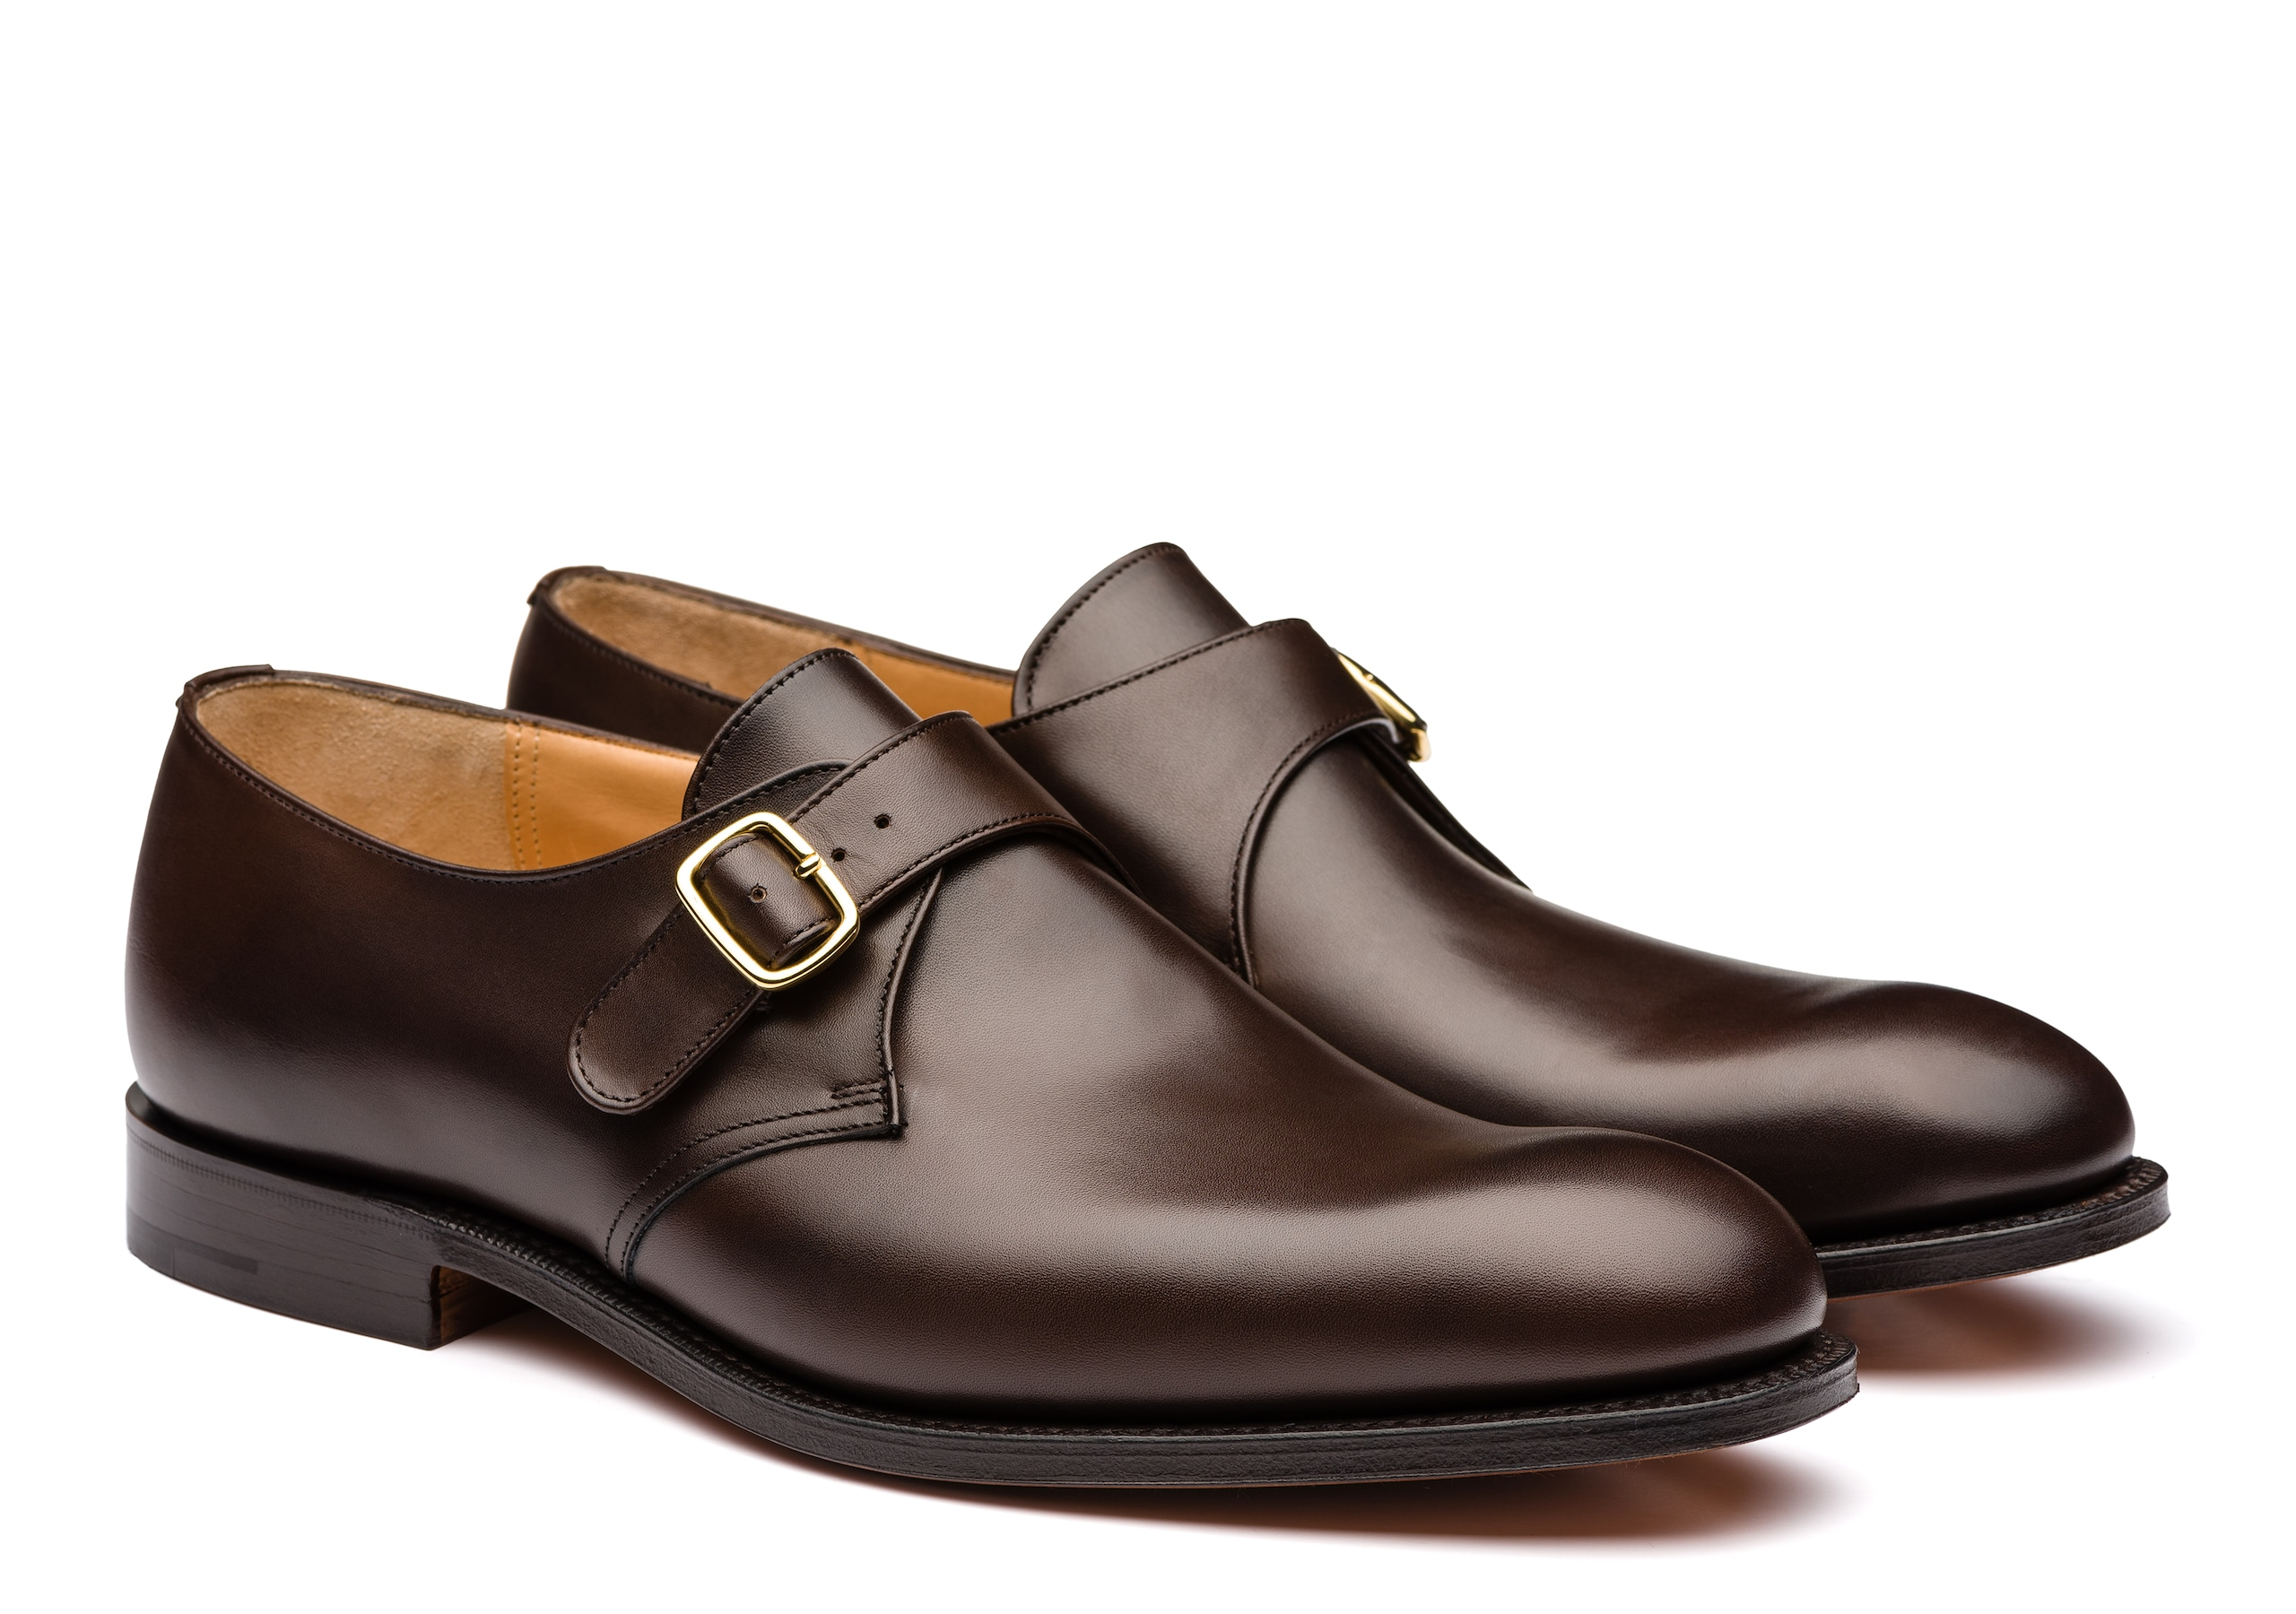 Becket 173 Church's Nevada Leather Monk Strap Brown